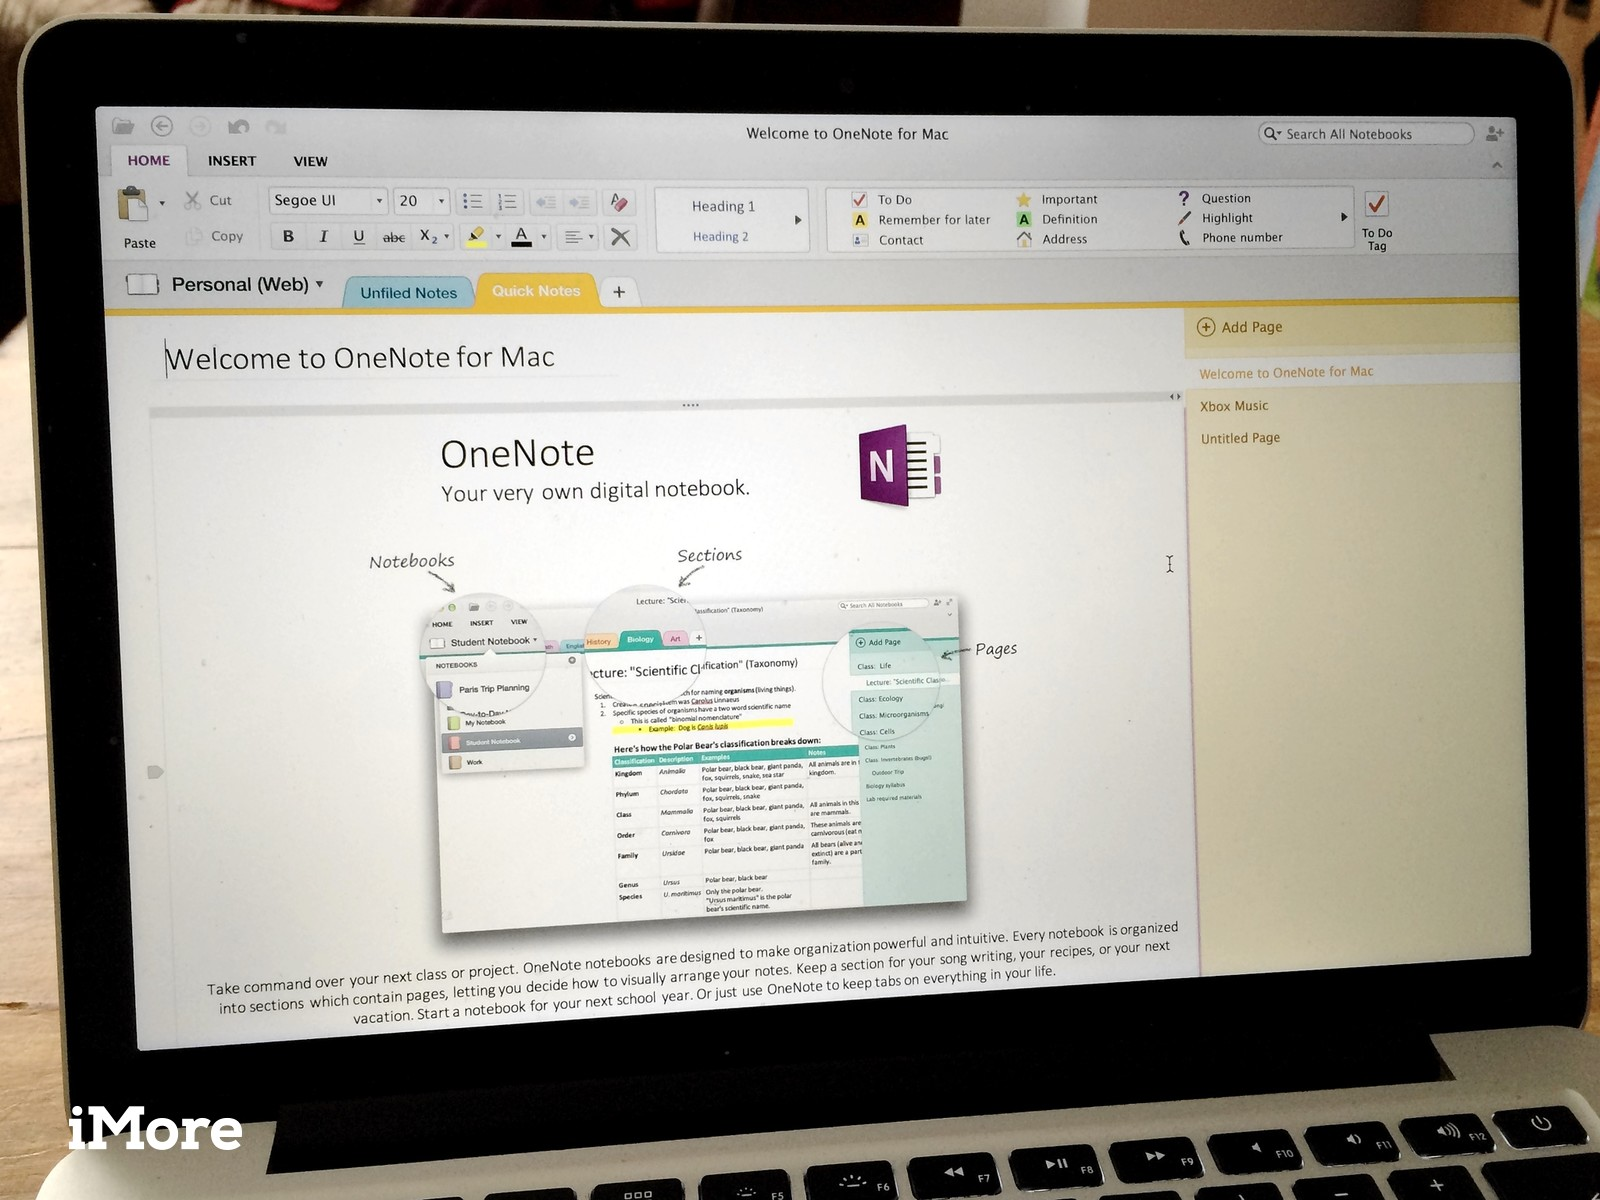 OneNote for Mac lets you find and copy text from images